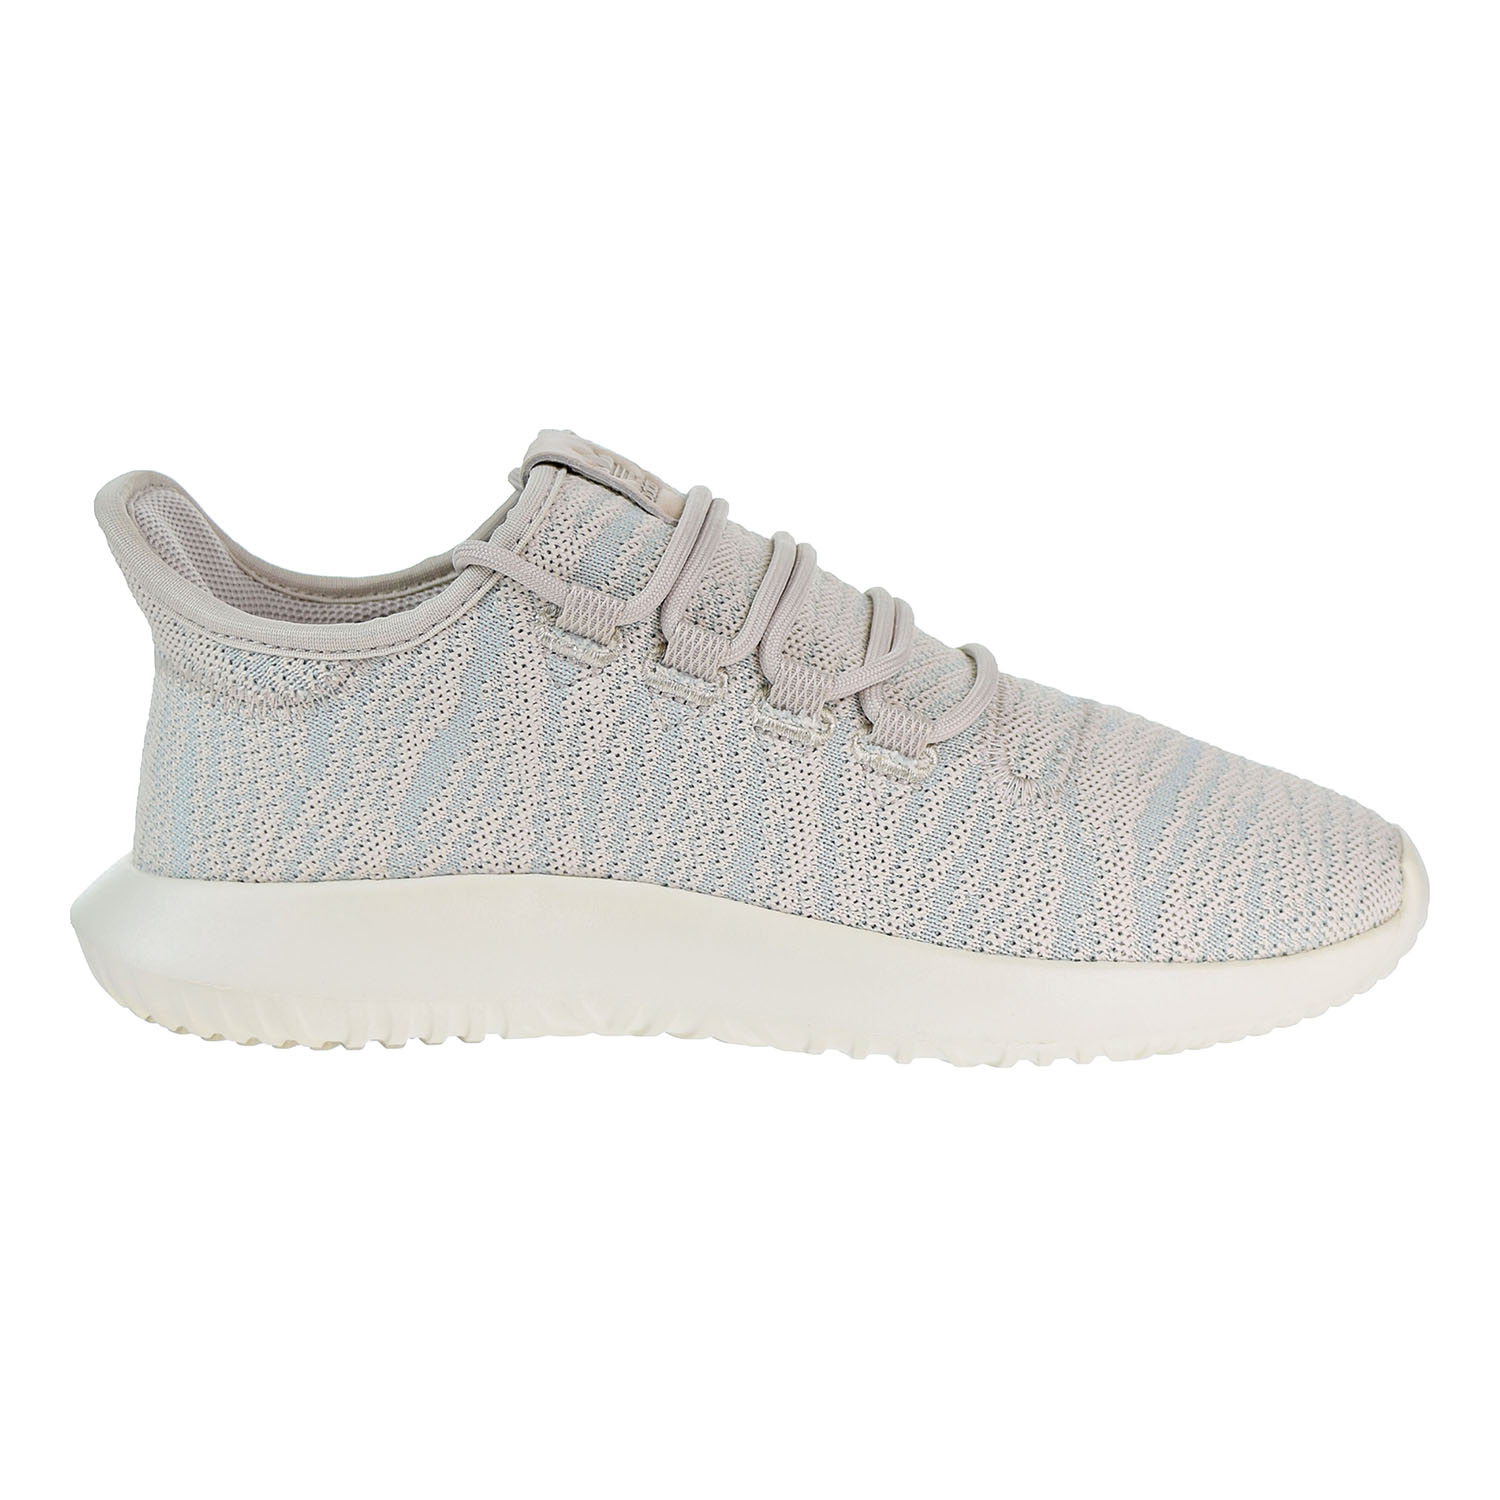 brand new 9cf83 c809b Details about Adidas Tubular Shadow Women's Shoes Clear Brown/Ash Green/Off  White CQ2463